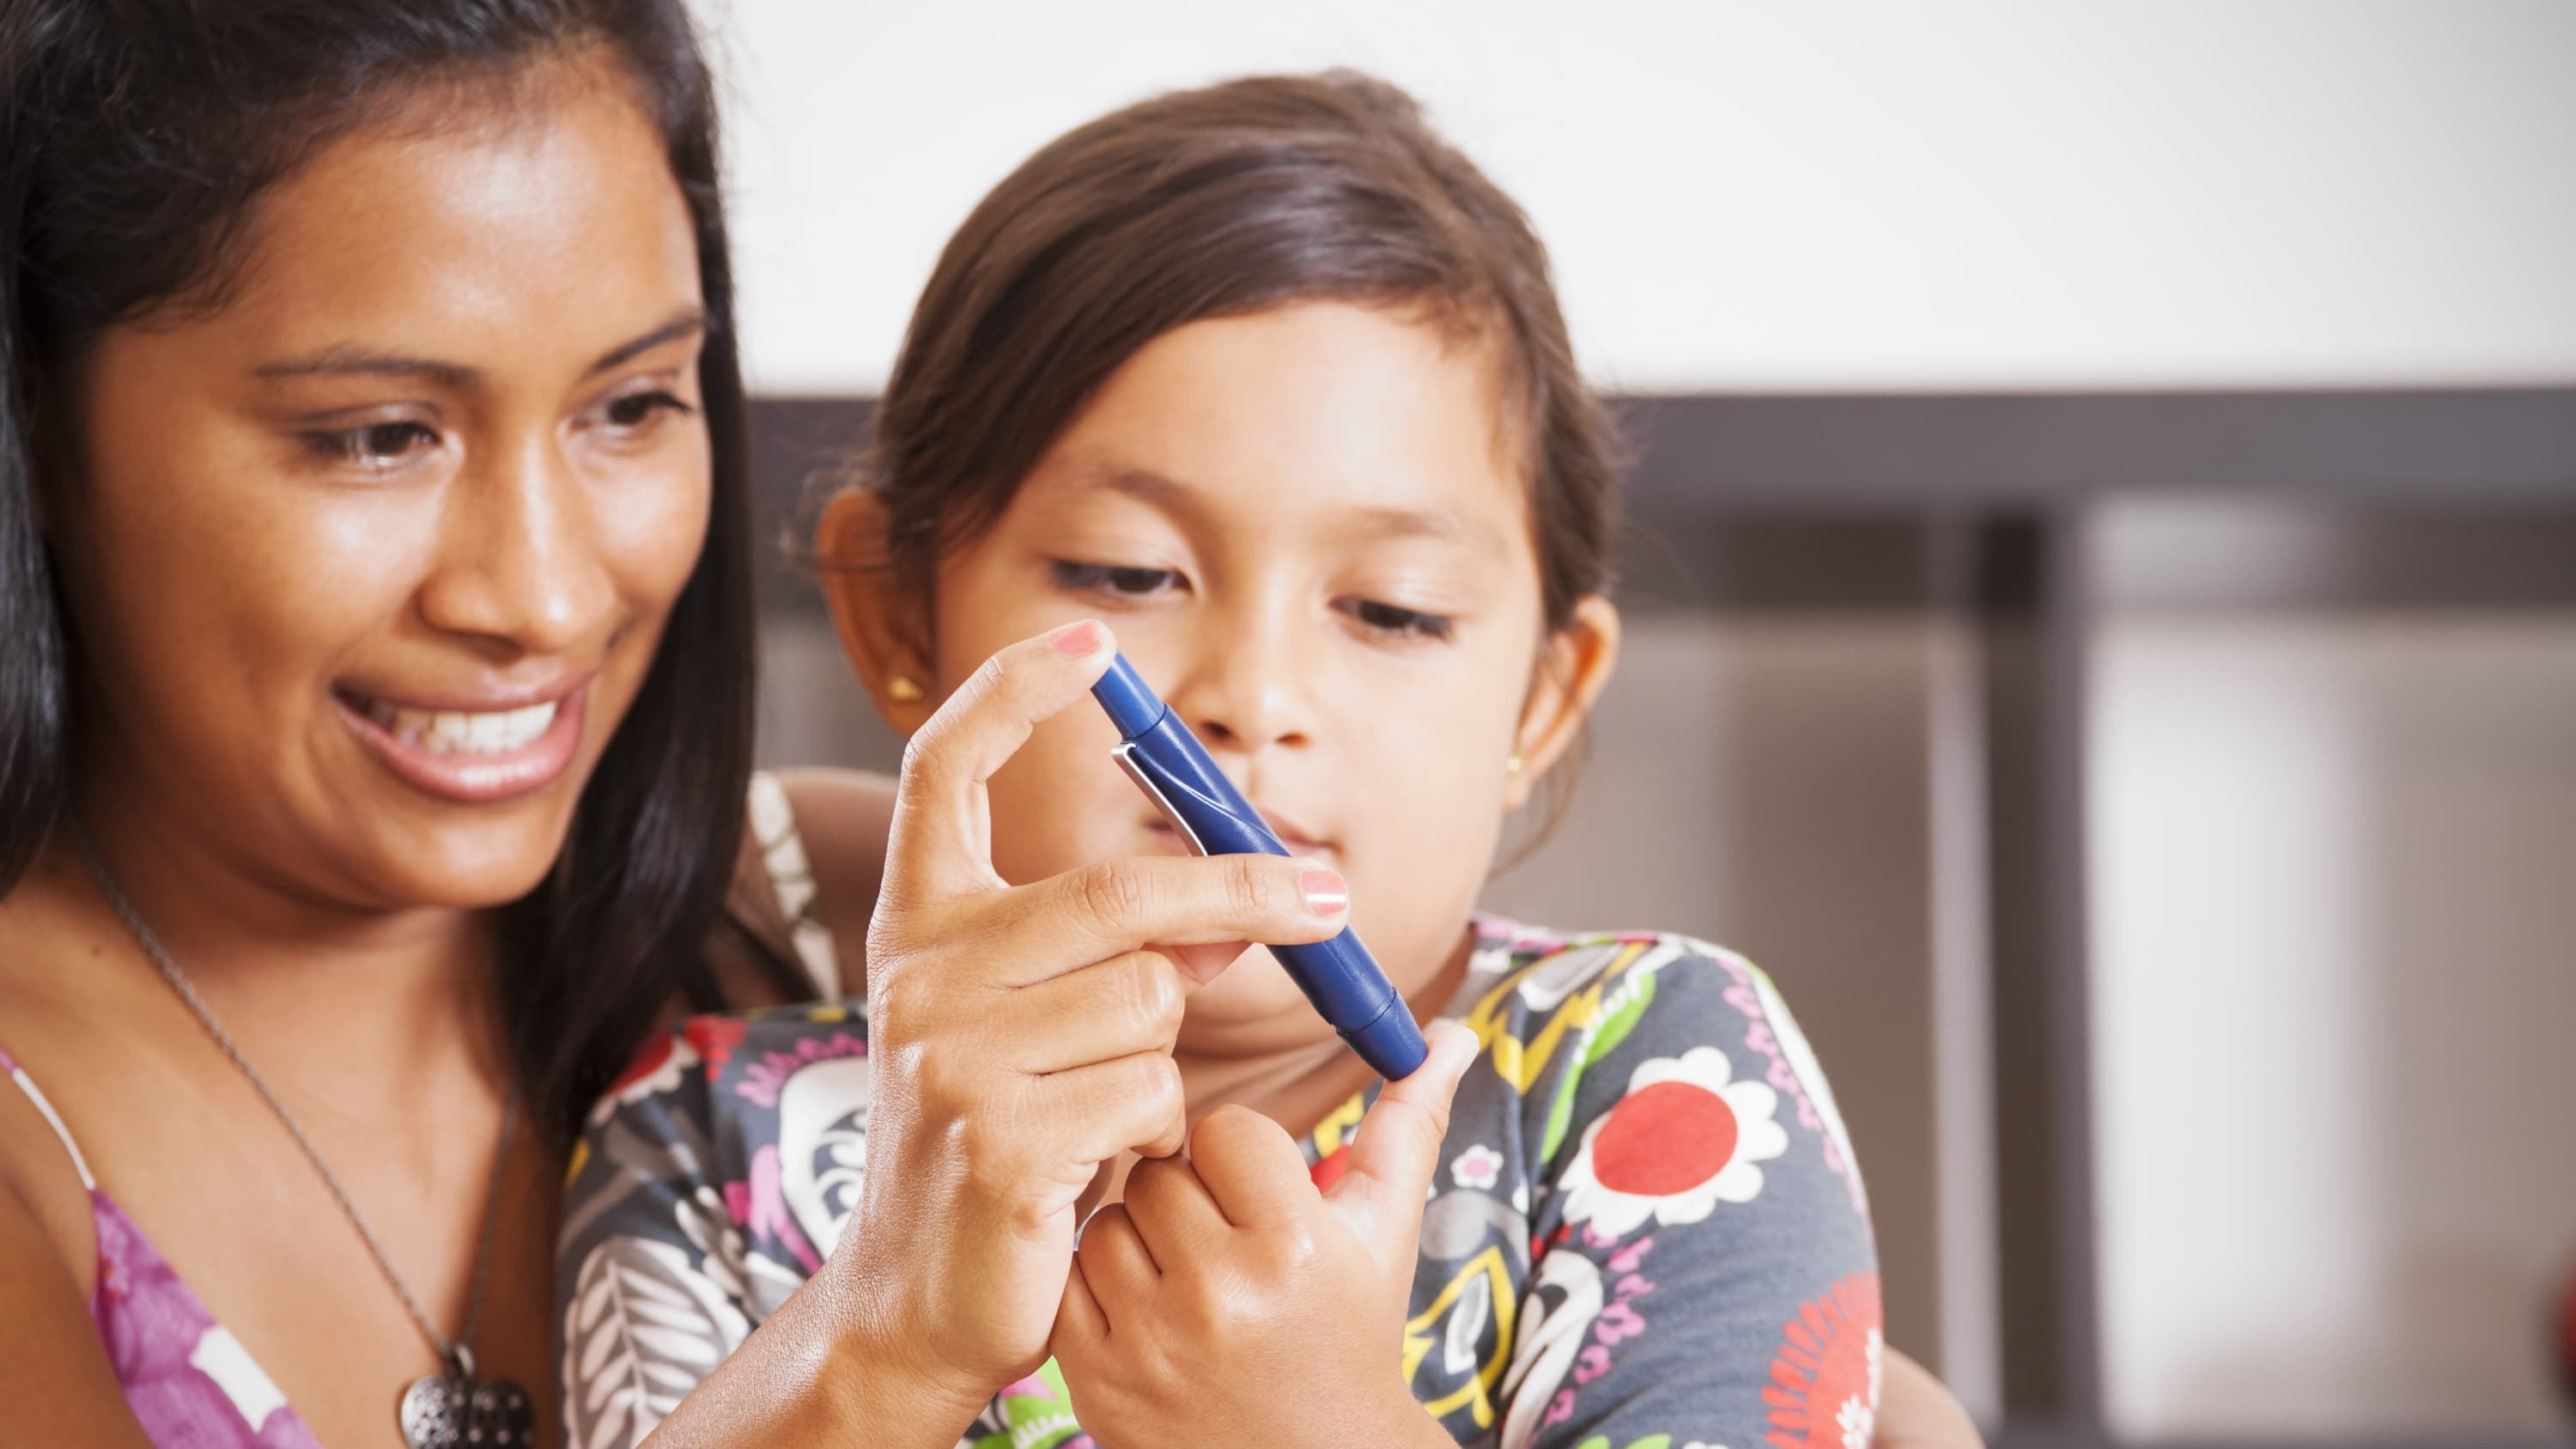 A mother helps her young daughter use a device to test blood sugar in people with diabetes